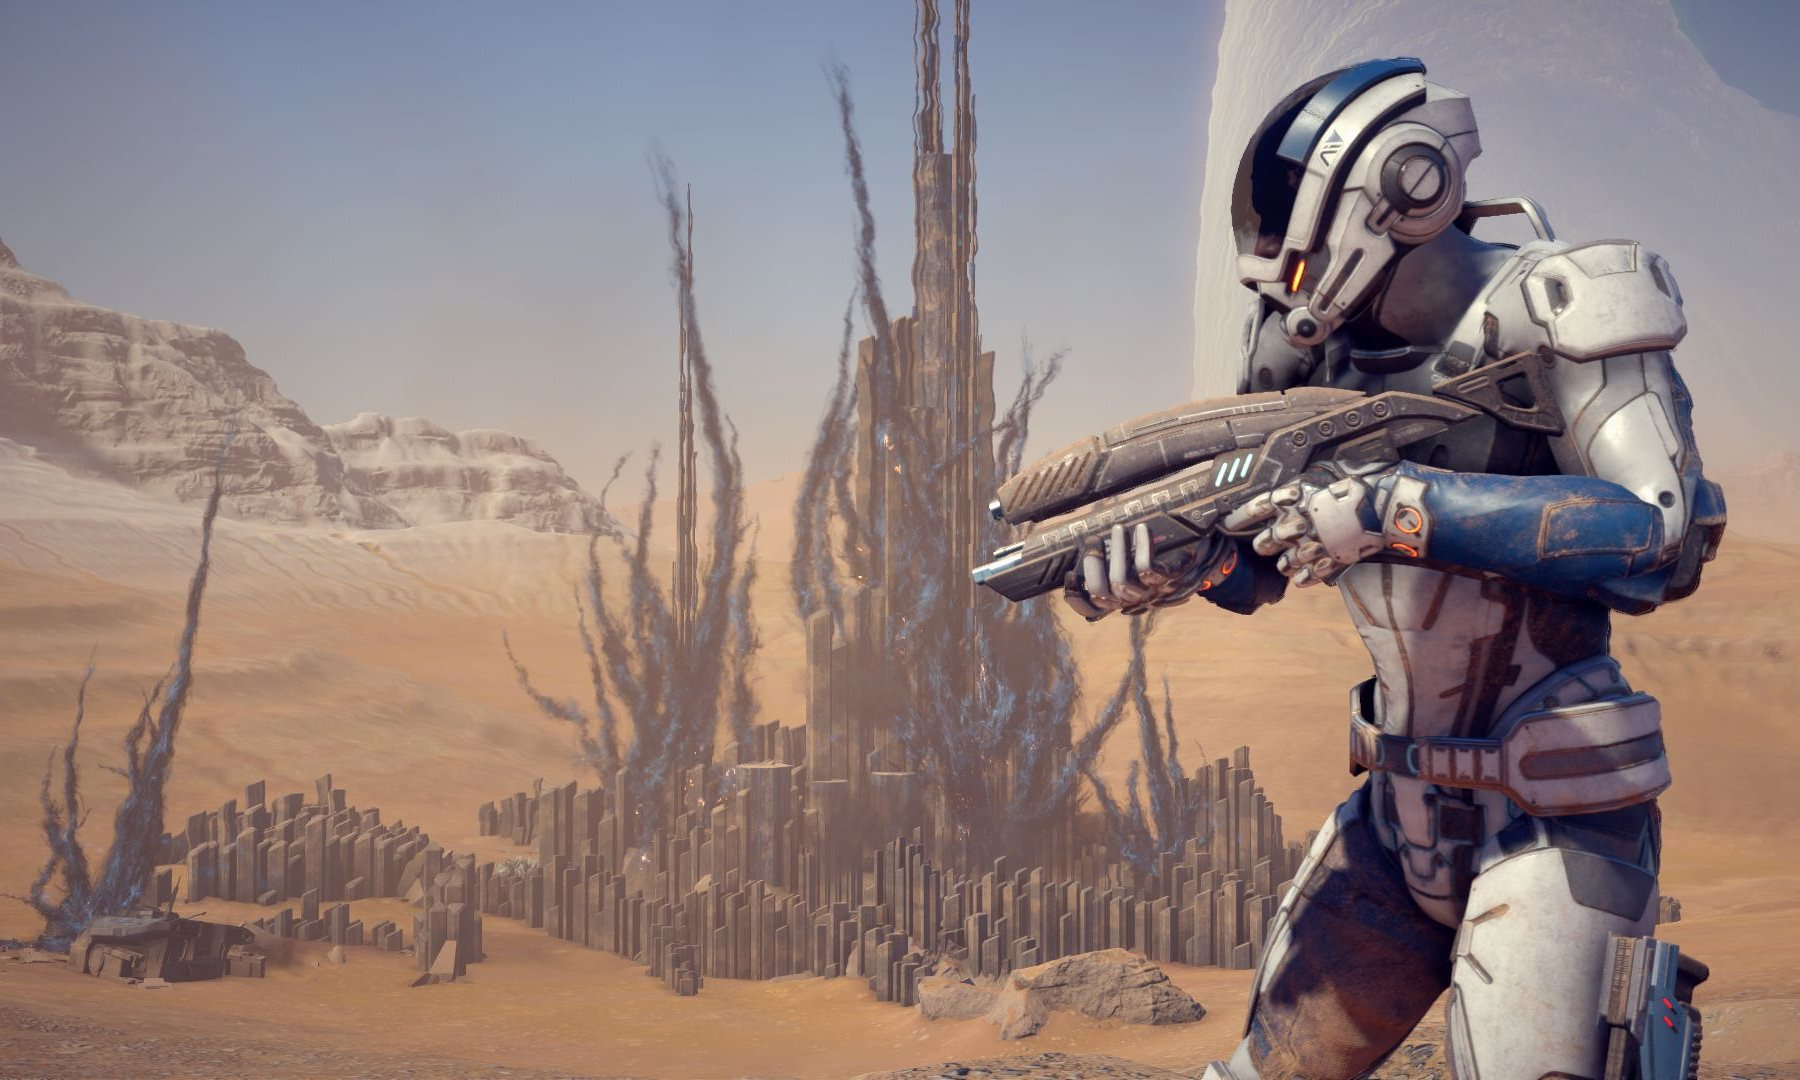 17/03/2017  Mass EFfect: Andromeda – what's changed in the universe?